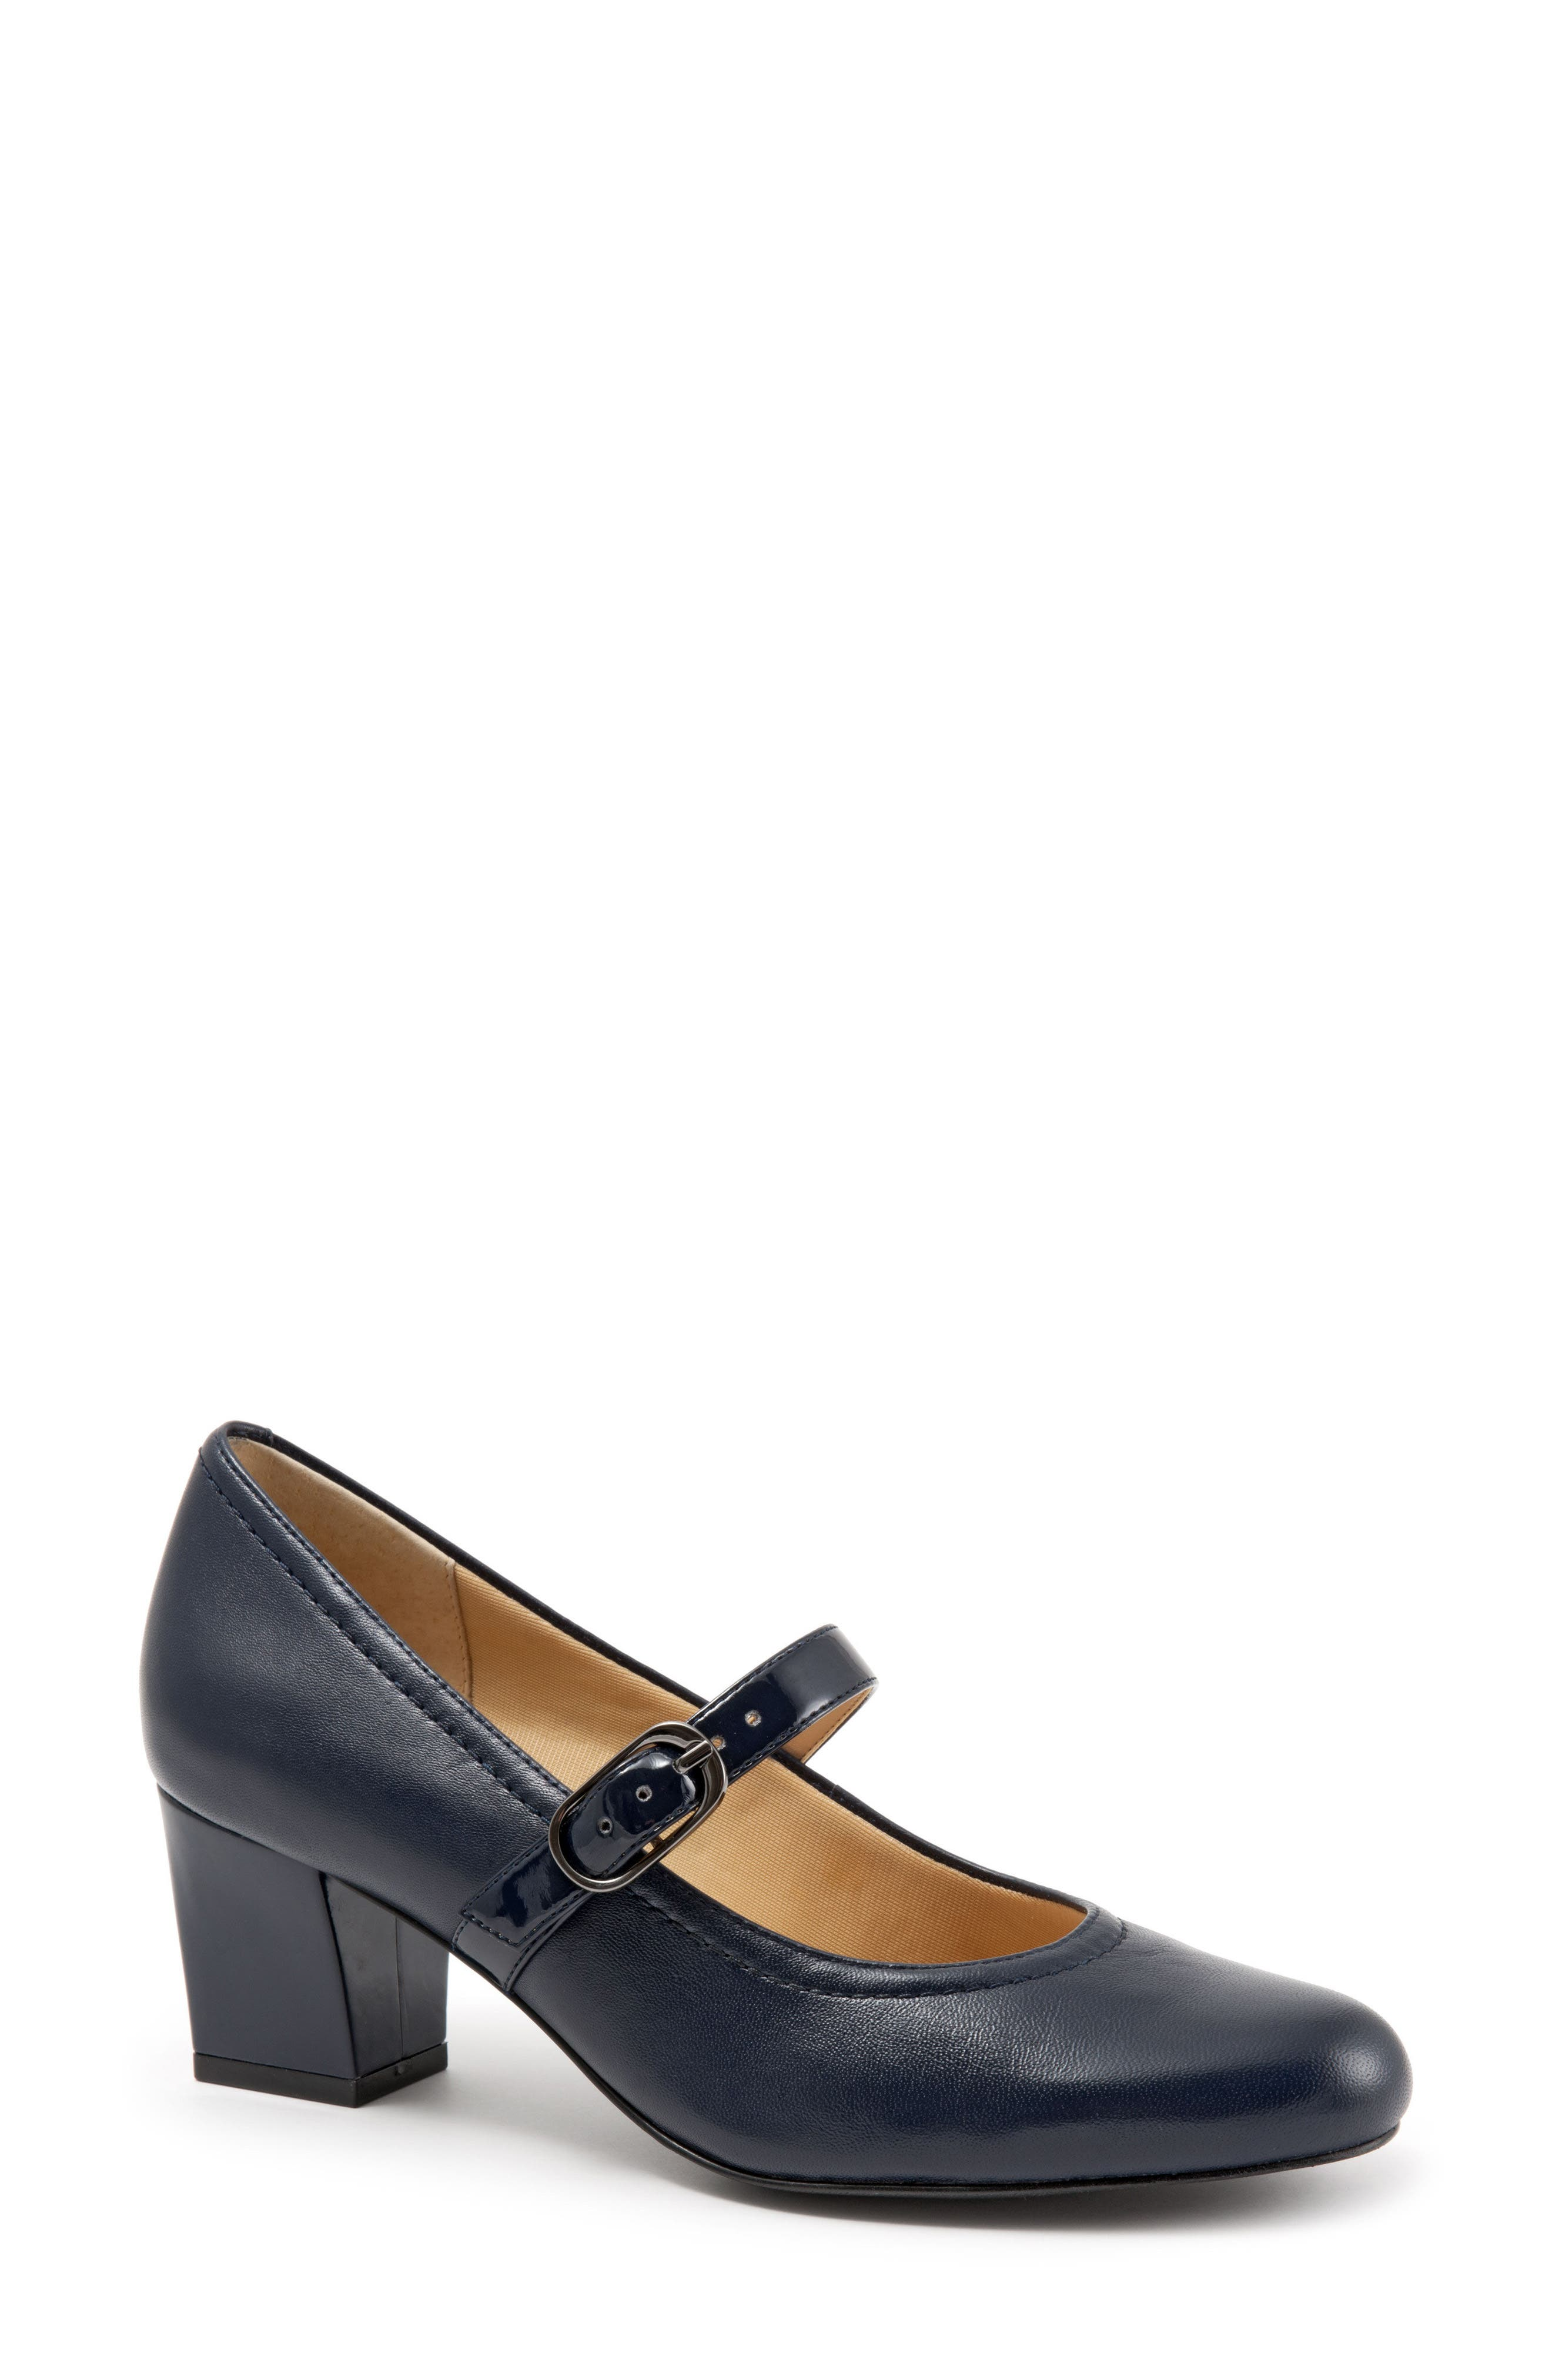 'Candice' Mary Jane Pump,                             Main thumbnail 1, color,                             NAVY LEATHER